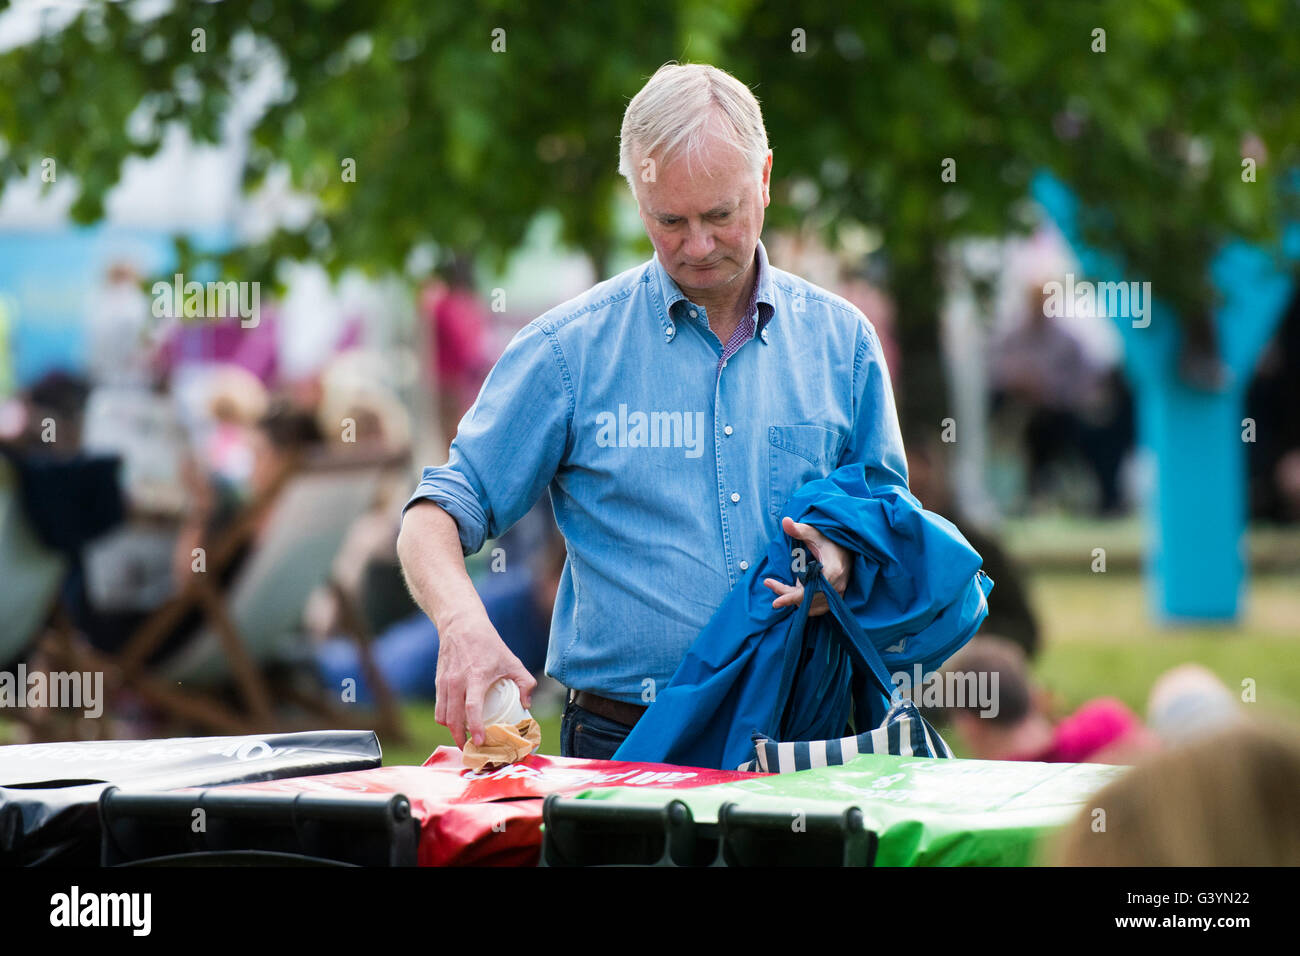 A man looking to recycle his rubbish trash waste  at  the Hay Festival of literature and the arts , Hay on Wye, - Stock Image